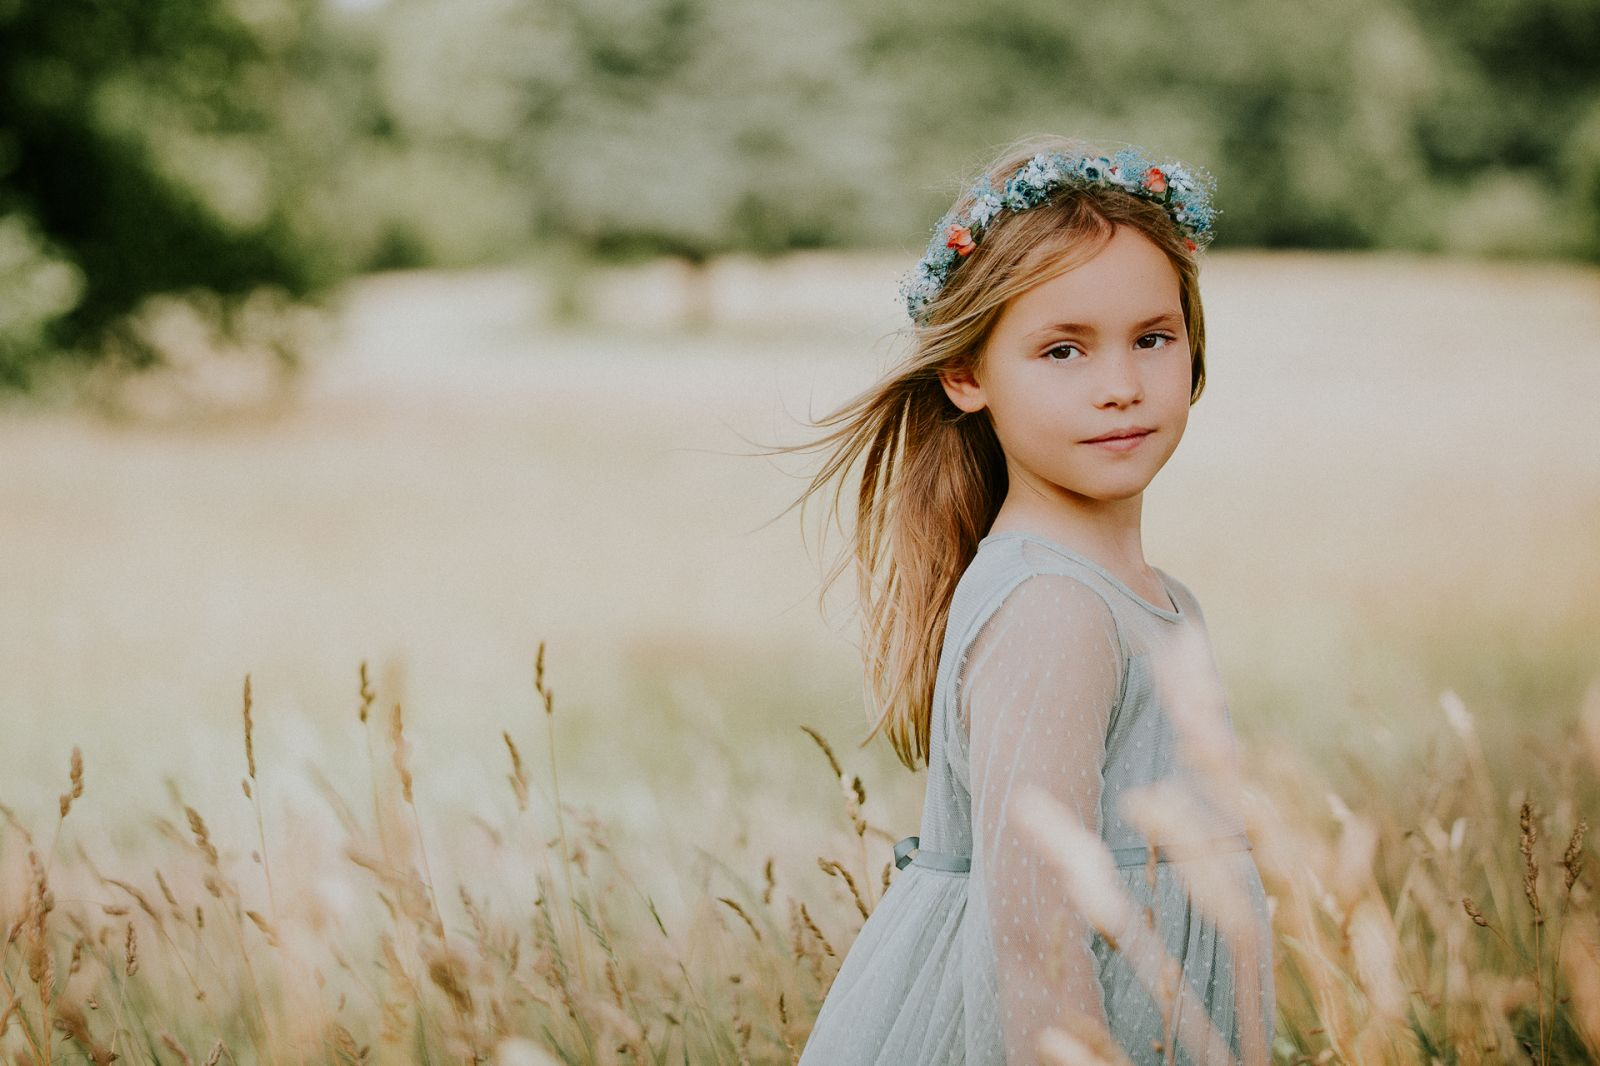 Young girl in field of long grass